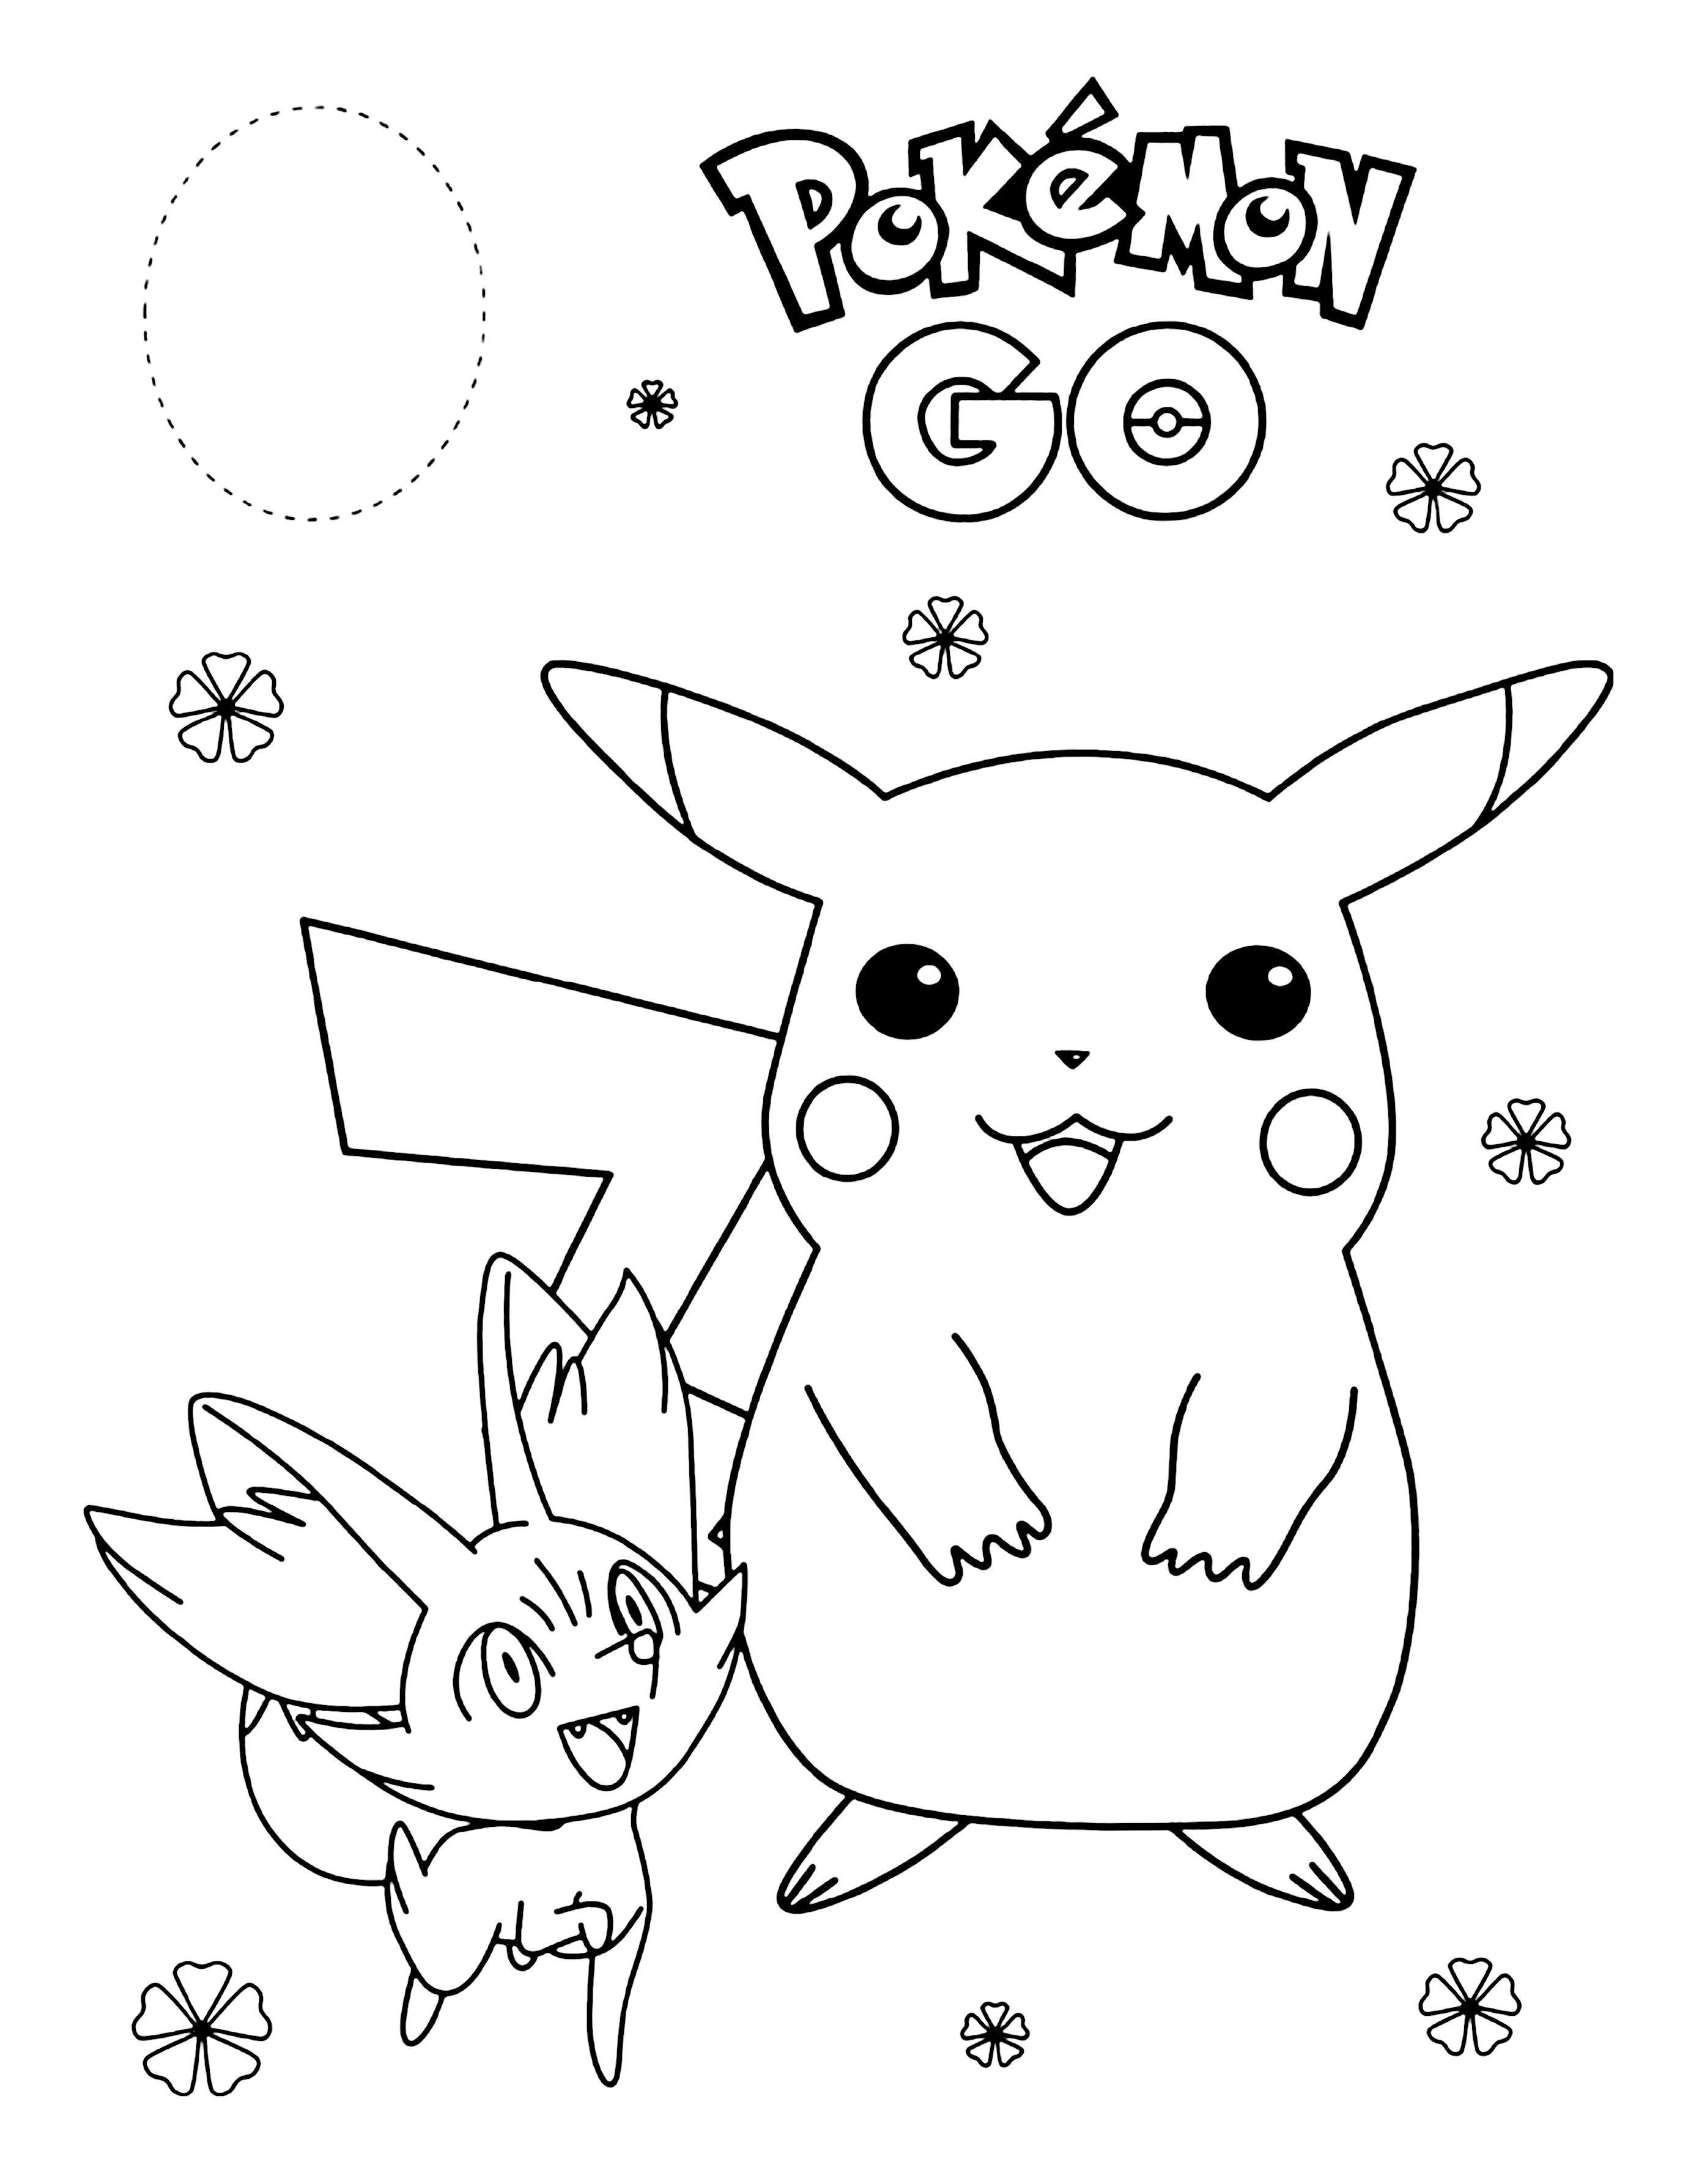 50 Pokemon Coloring Pages For Kids Pokemon Coloring Pages Pokemon Coloring Coloring Books